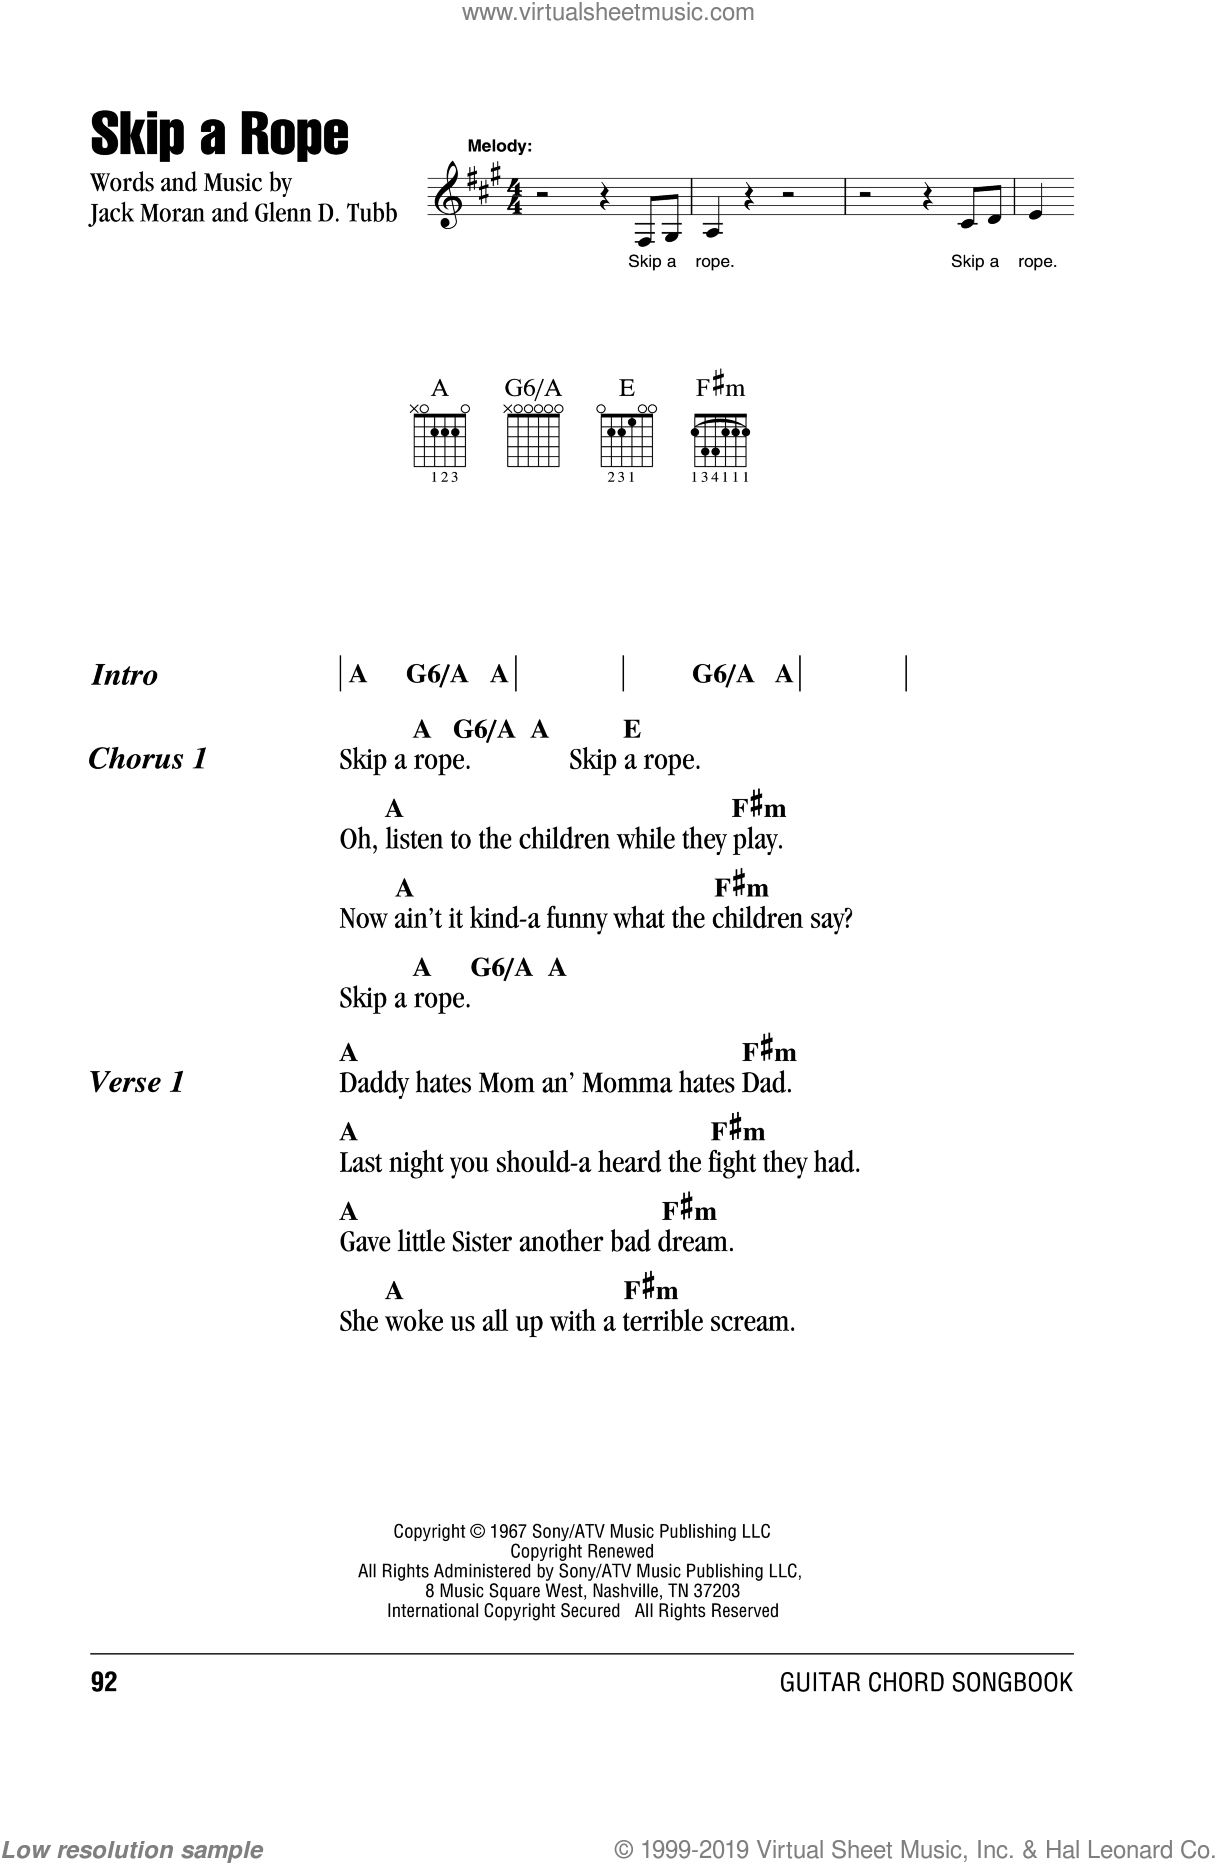 Skip A Rope sheet music for guitar (chords, lyrics, melody) by Jack Moran